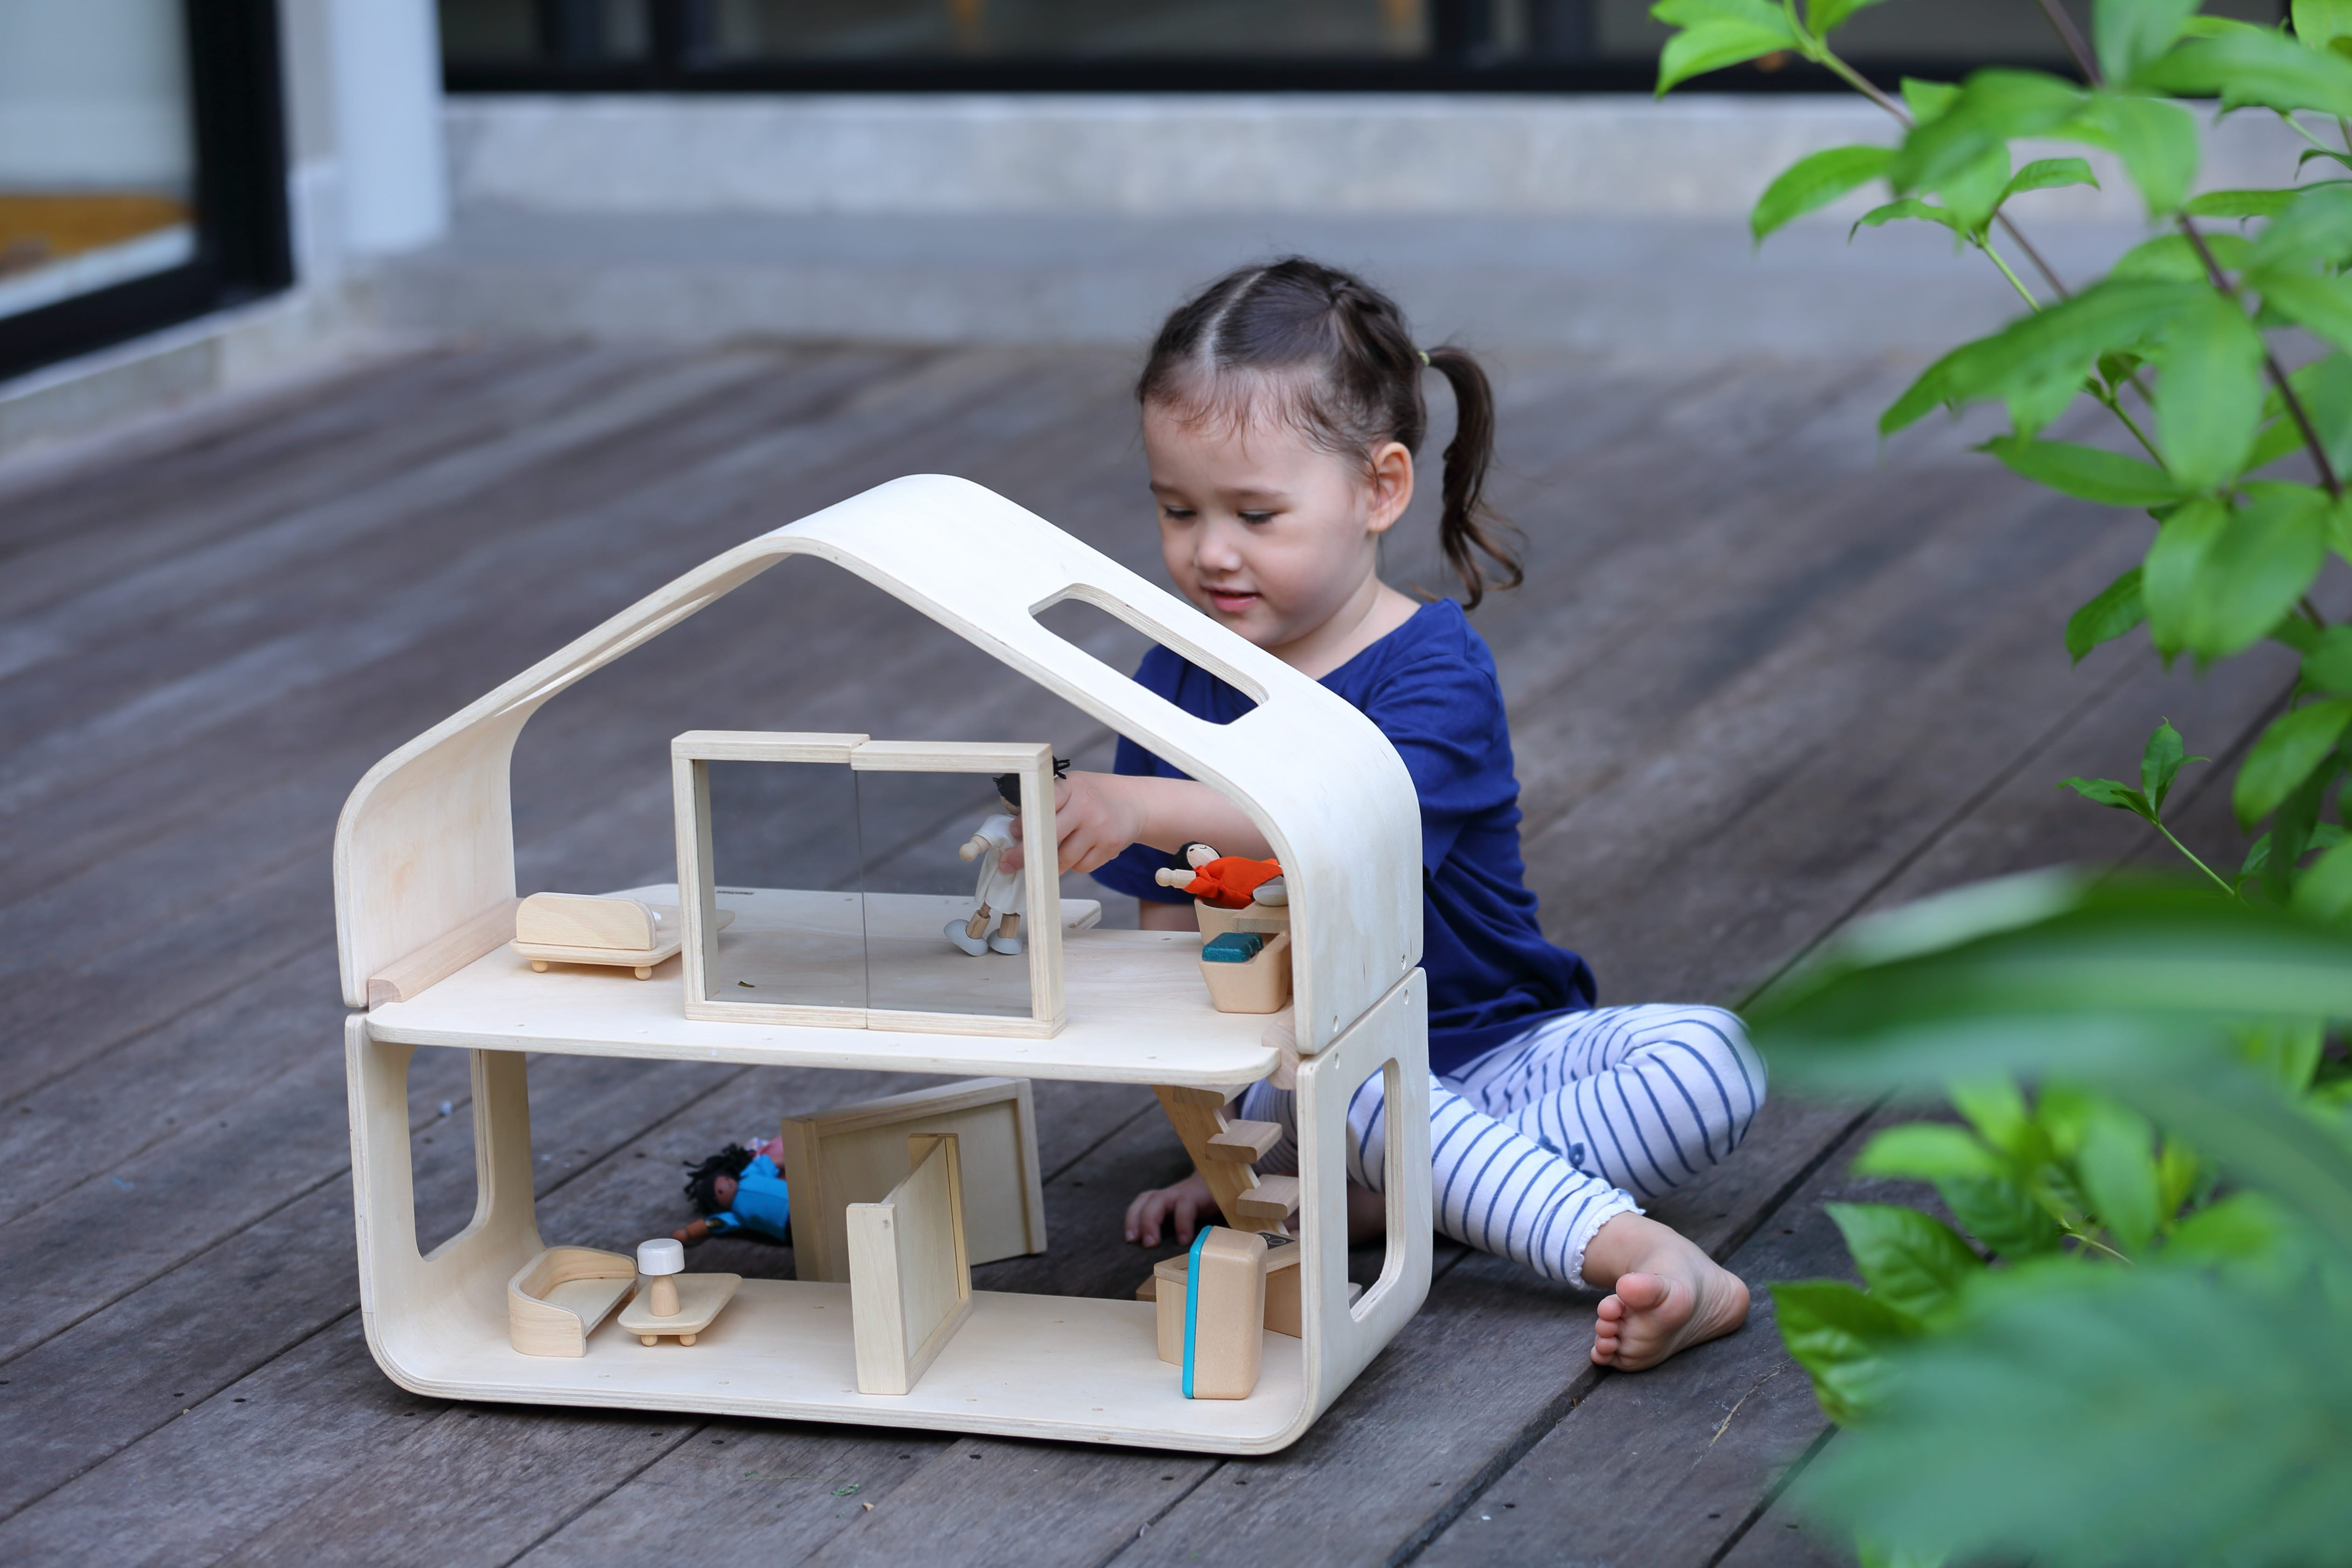 7122_PlanToys_CONTEMPORARY_DOLLHOUSE_Pretend_Play_Imagination_Coordination_Language_and_Communications_Social_Fine_Motor_3yrs_Wooden_toys_Education_toys_Safety_Toys_Non-toxic_2.jpg